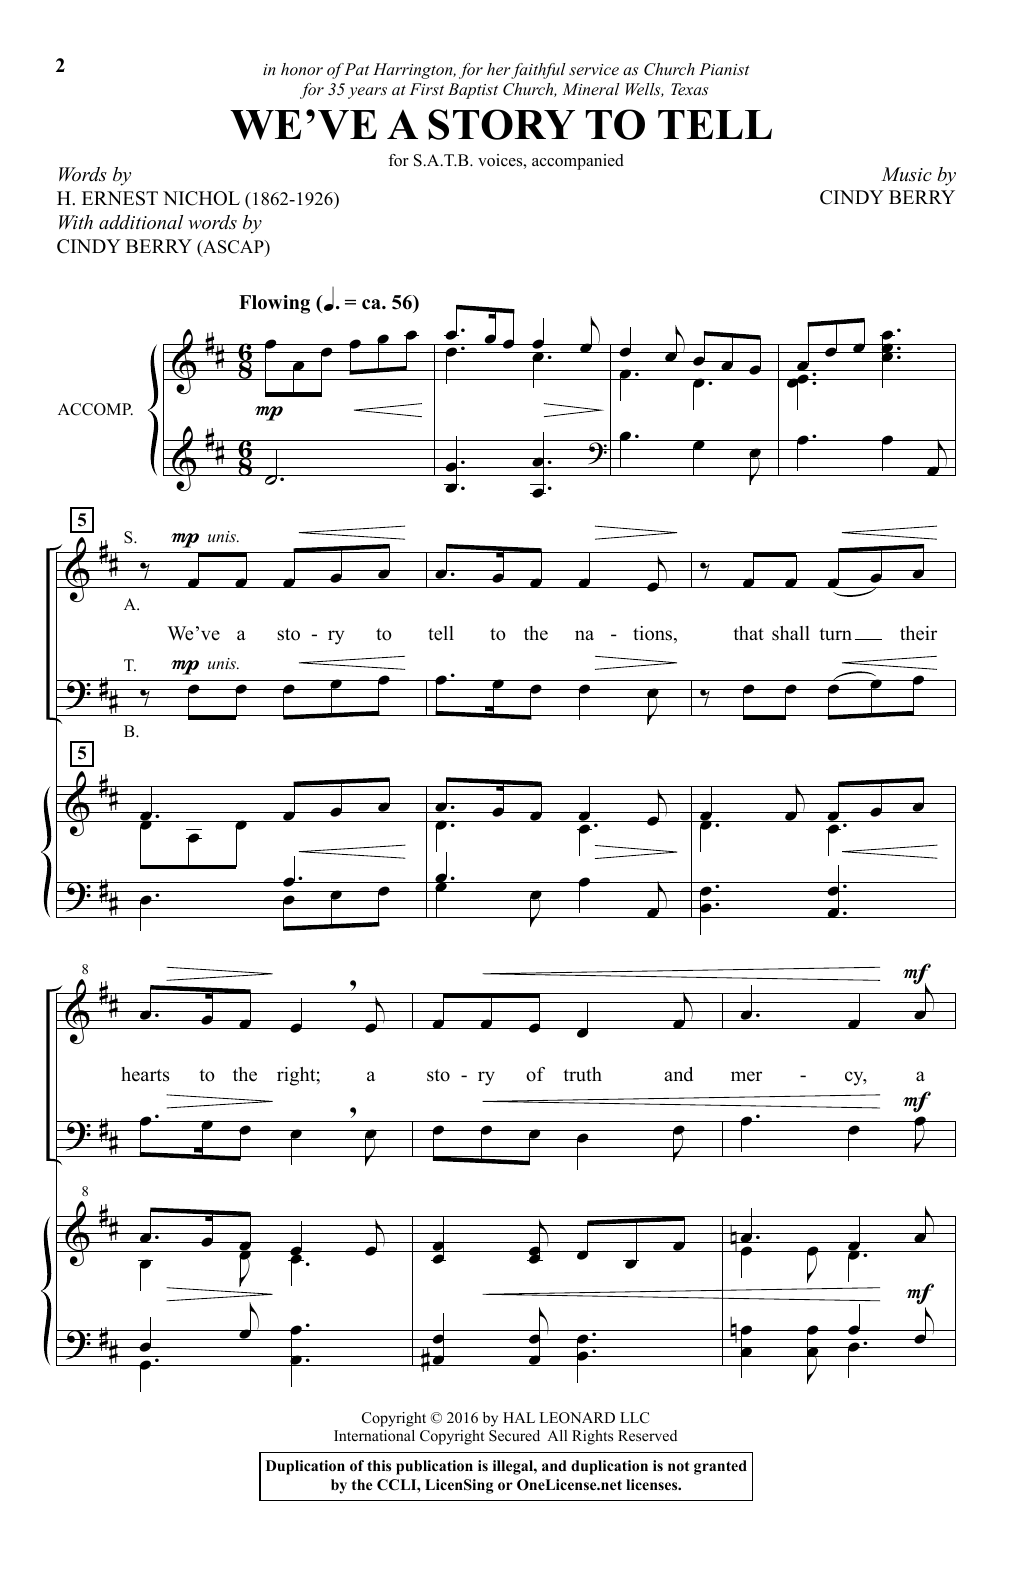 We've A Story To Tell (SATB Choir)